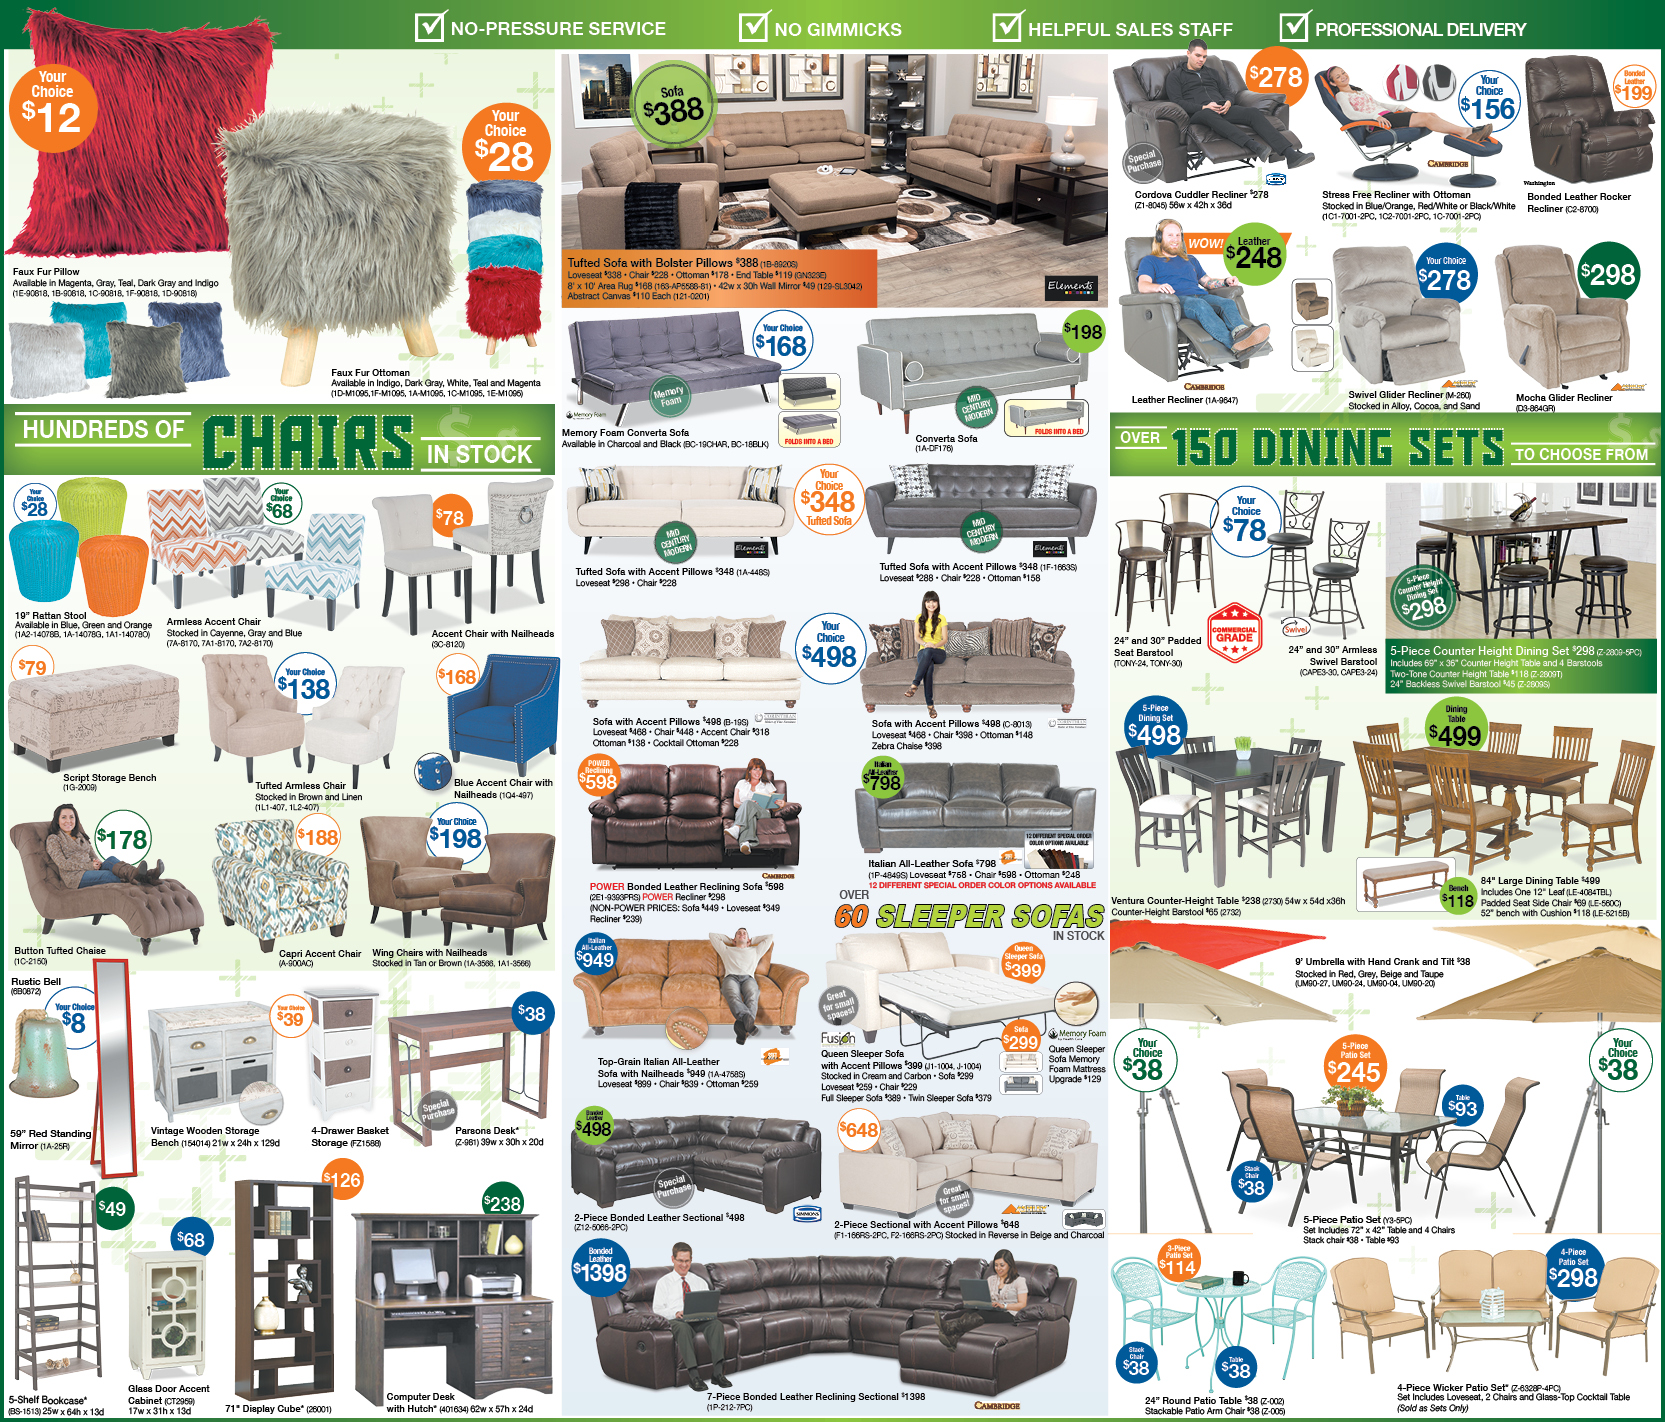 Tax Refund Newspaper Ad | Best Prices on living room furniture